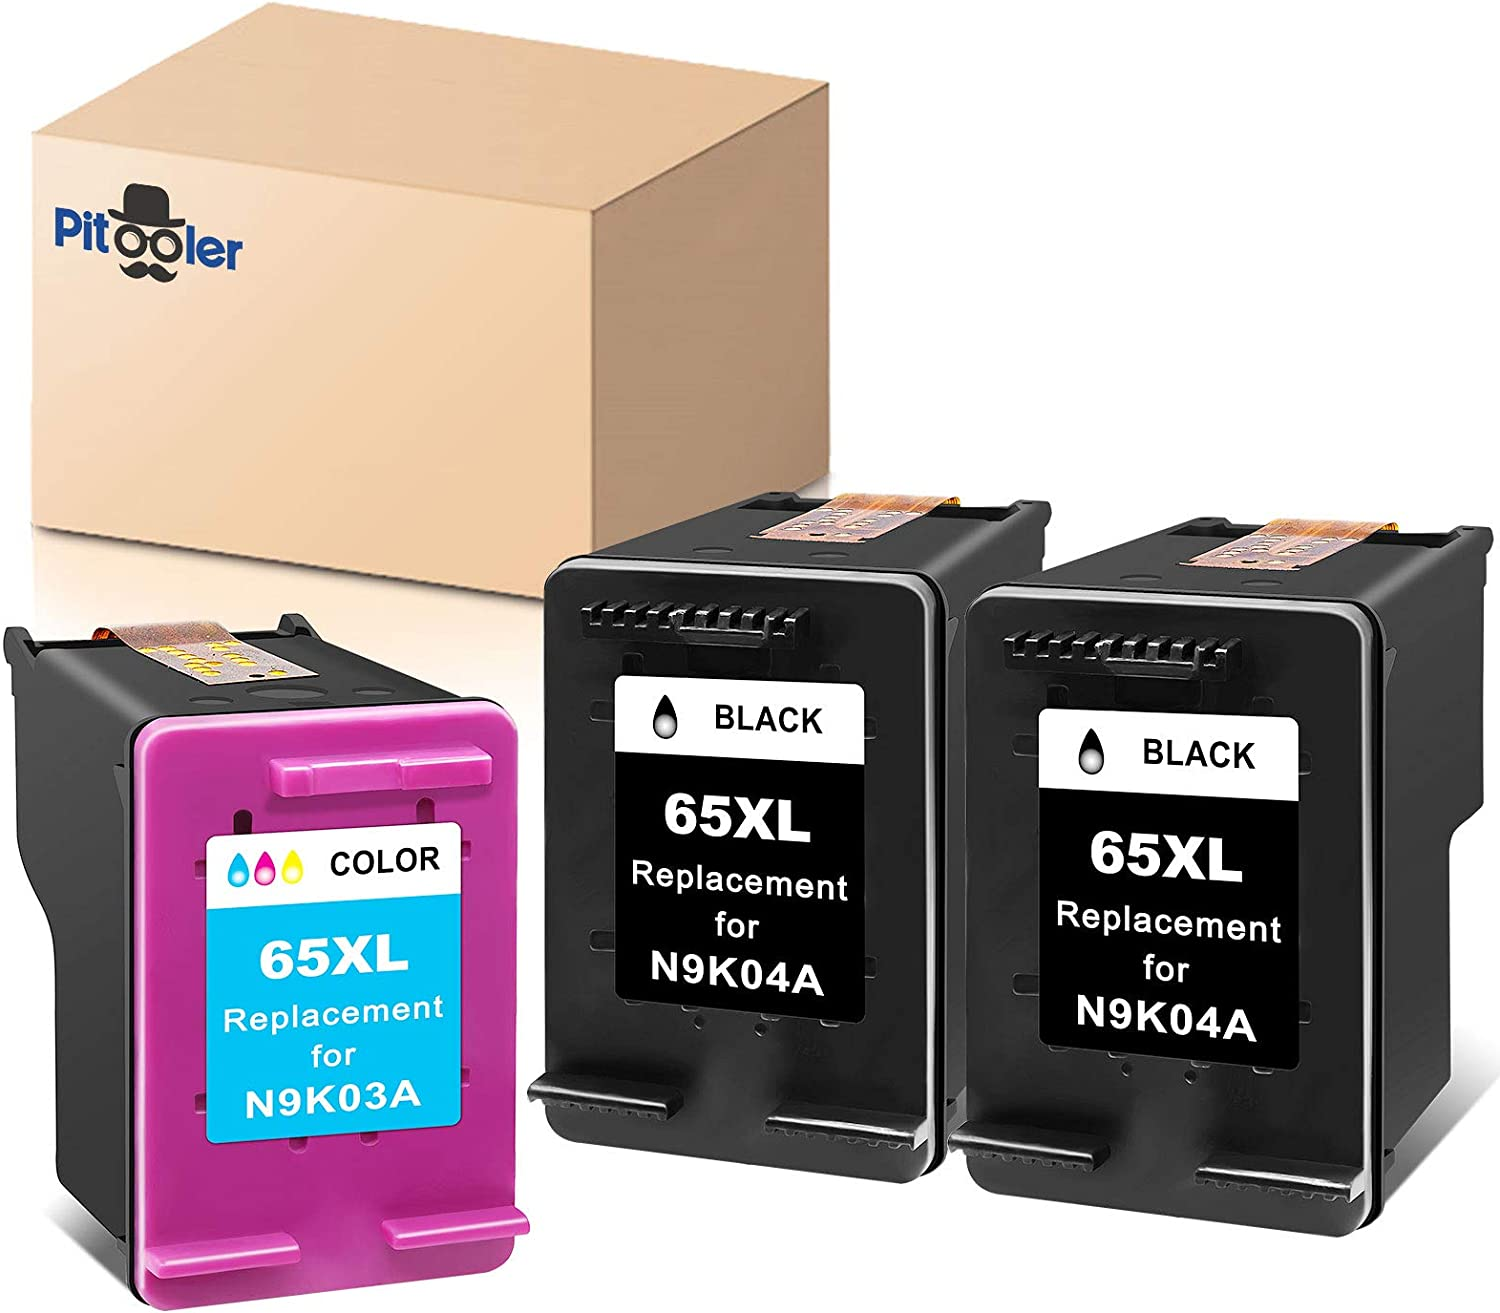 Pitooler Remanufactured Ink Cartridge Replacement for HP 65XL 65 XL Black Tri-Color to Use with Envy 5052 5055 5012 5010 5020 DeskJet 2600 2622 2652 3722 3755 3752 2635 2640 AMP 120 Printer, 3-Pack